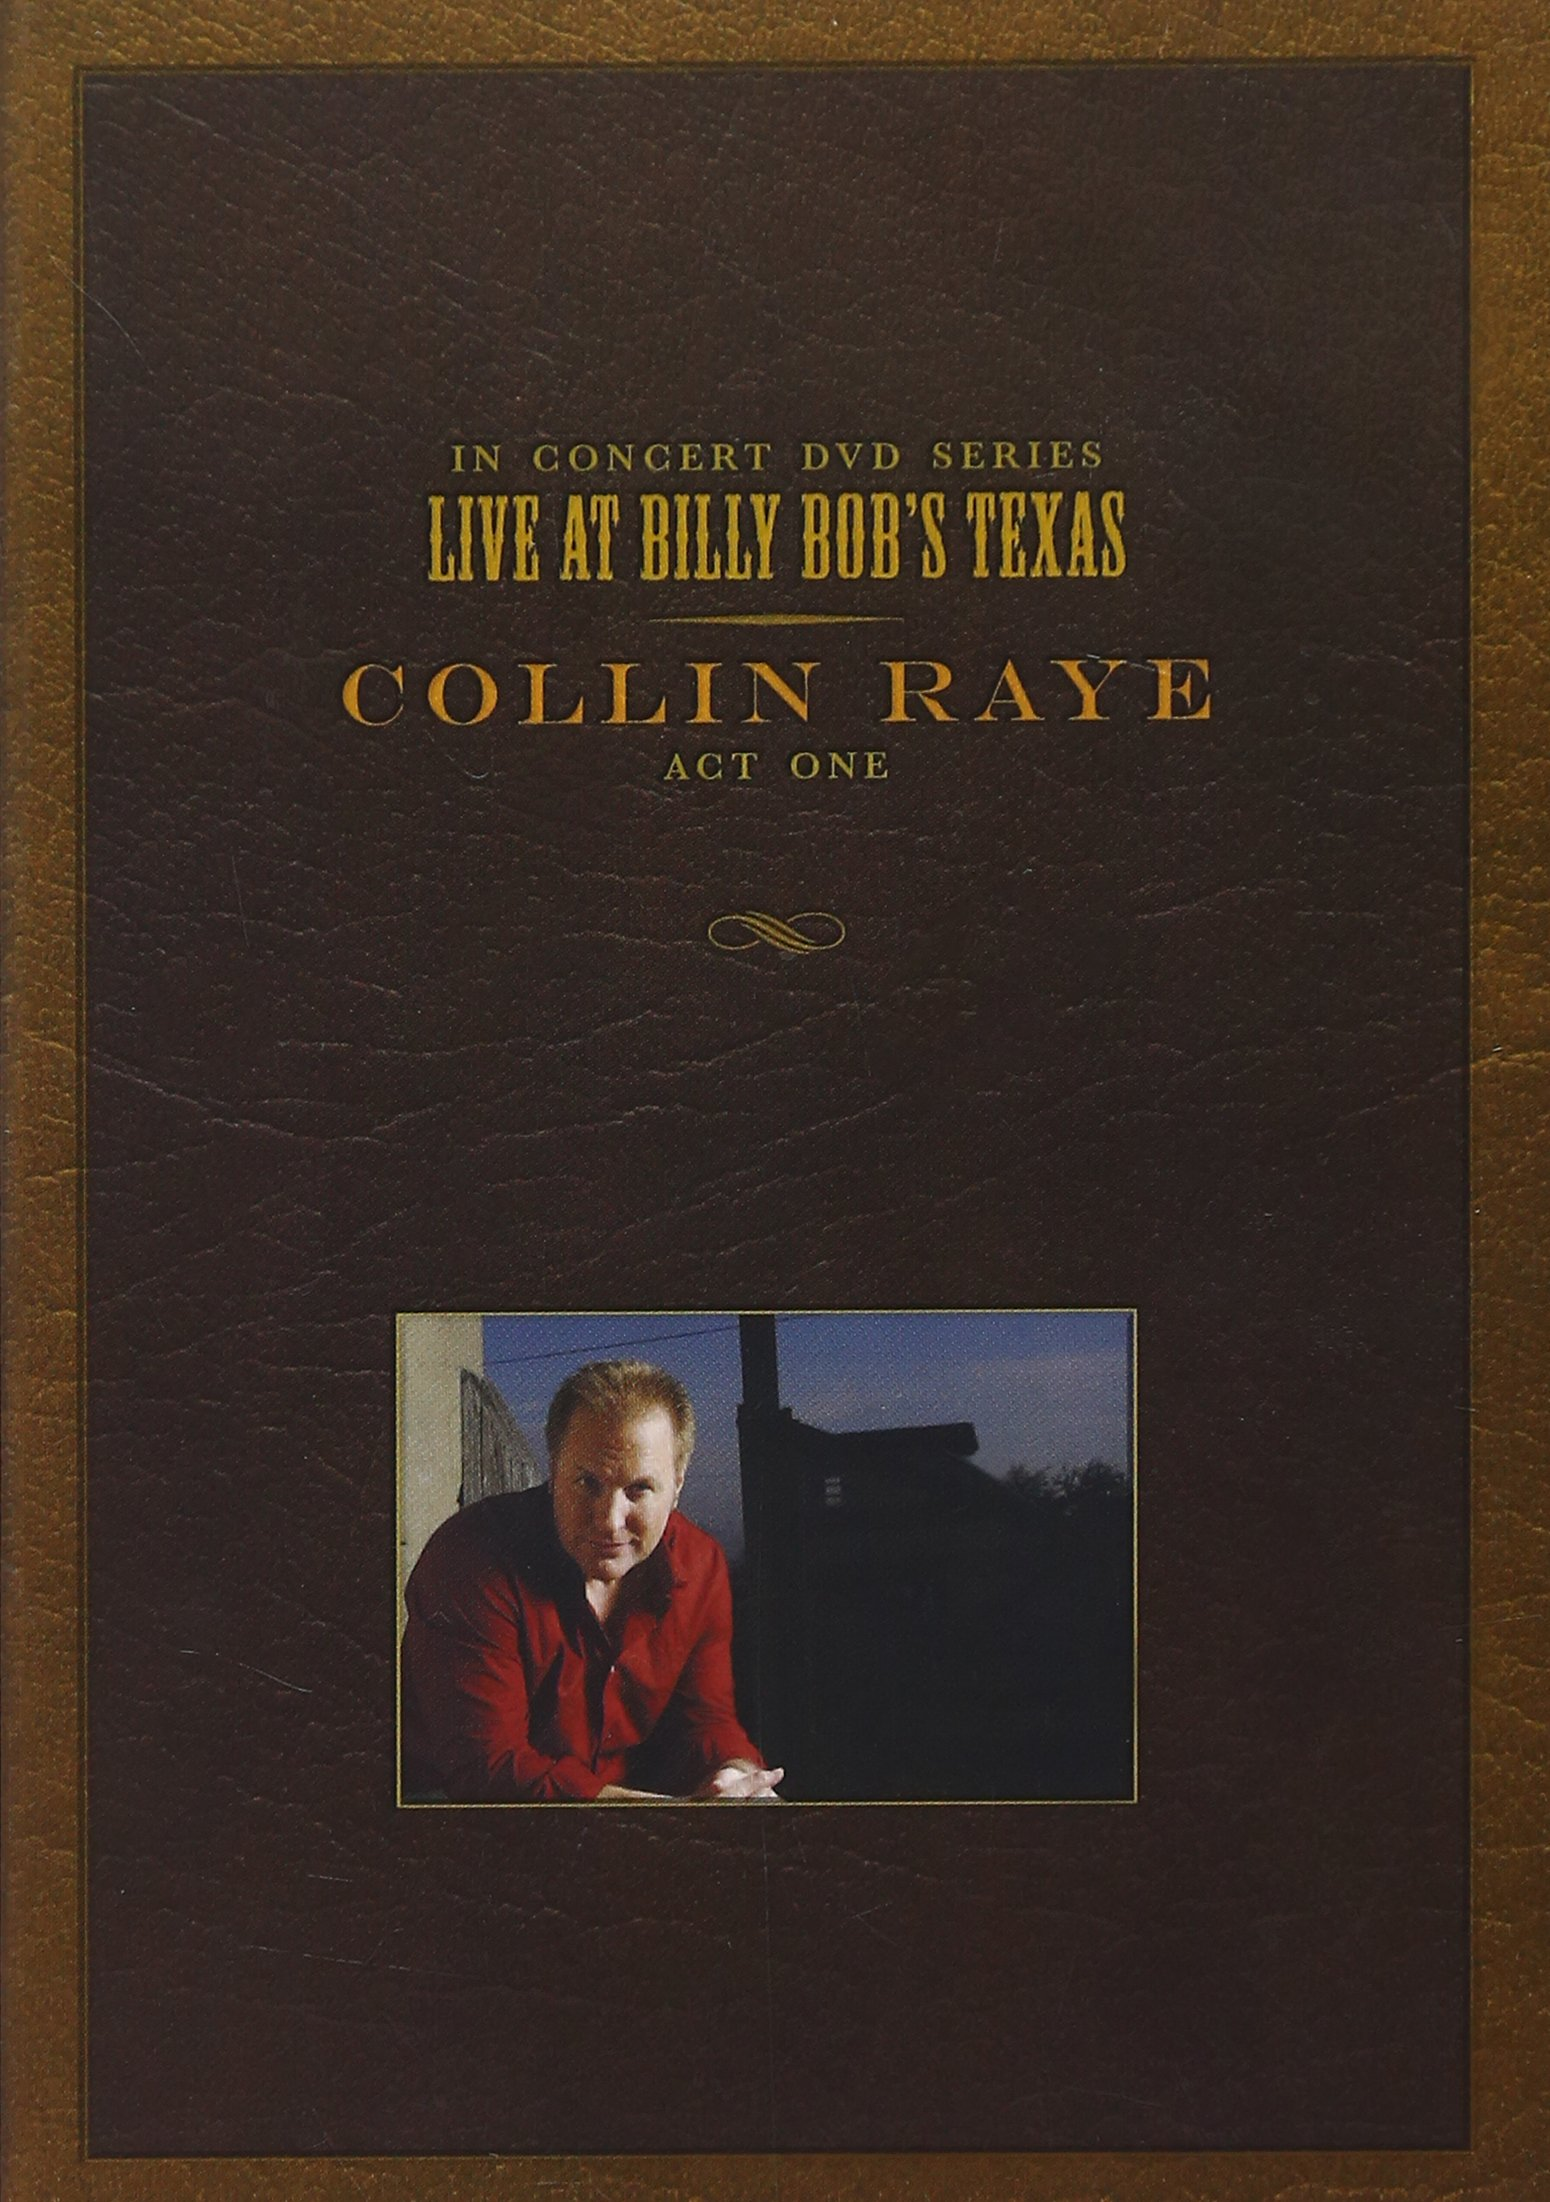 Collin Raye, Act One: Live at Billy Bob's Texas by Smith Music Group